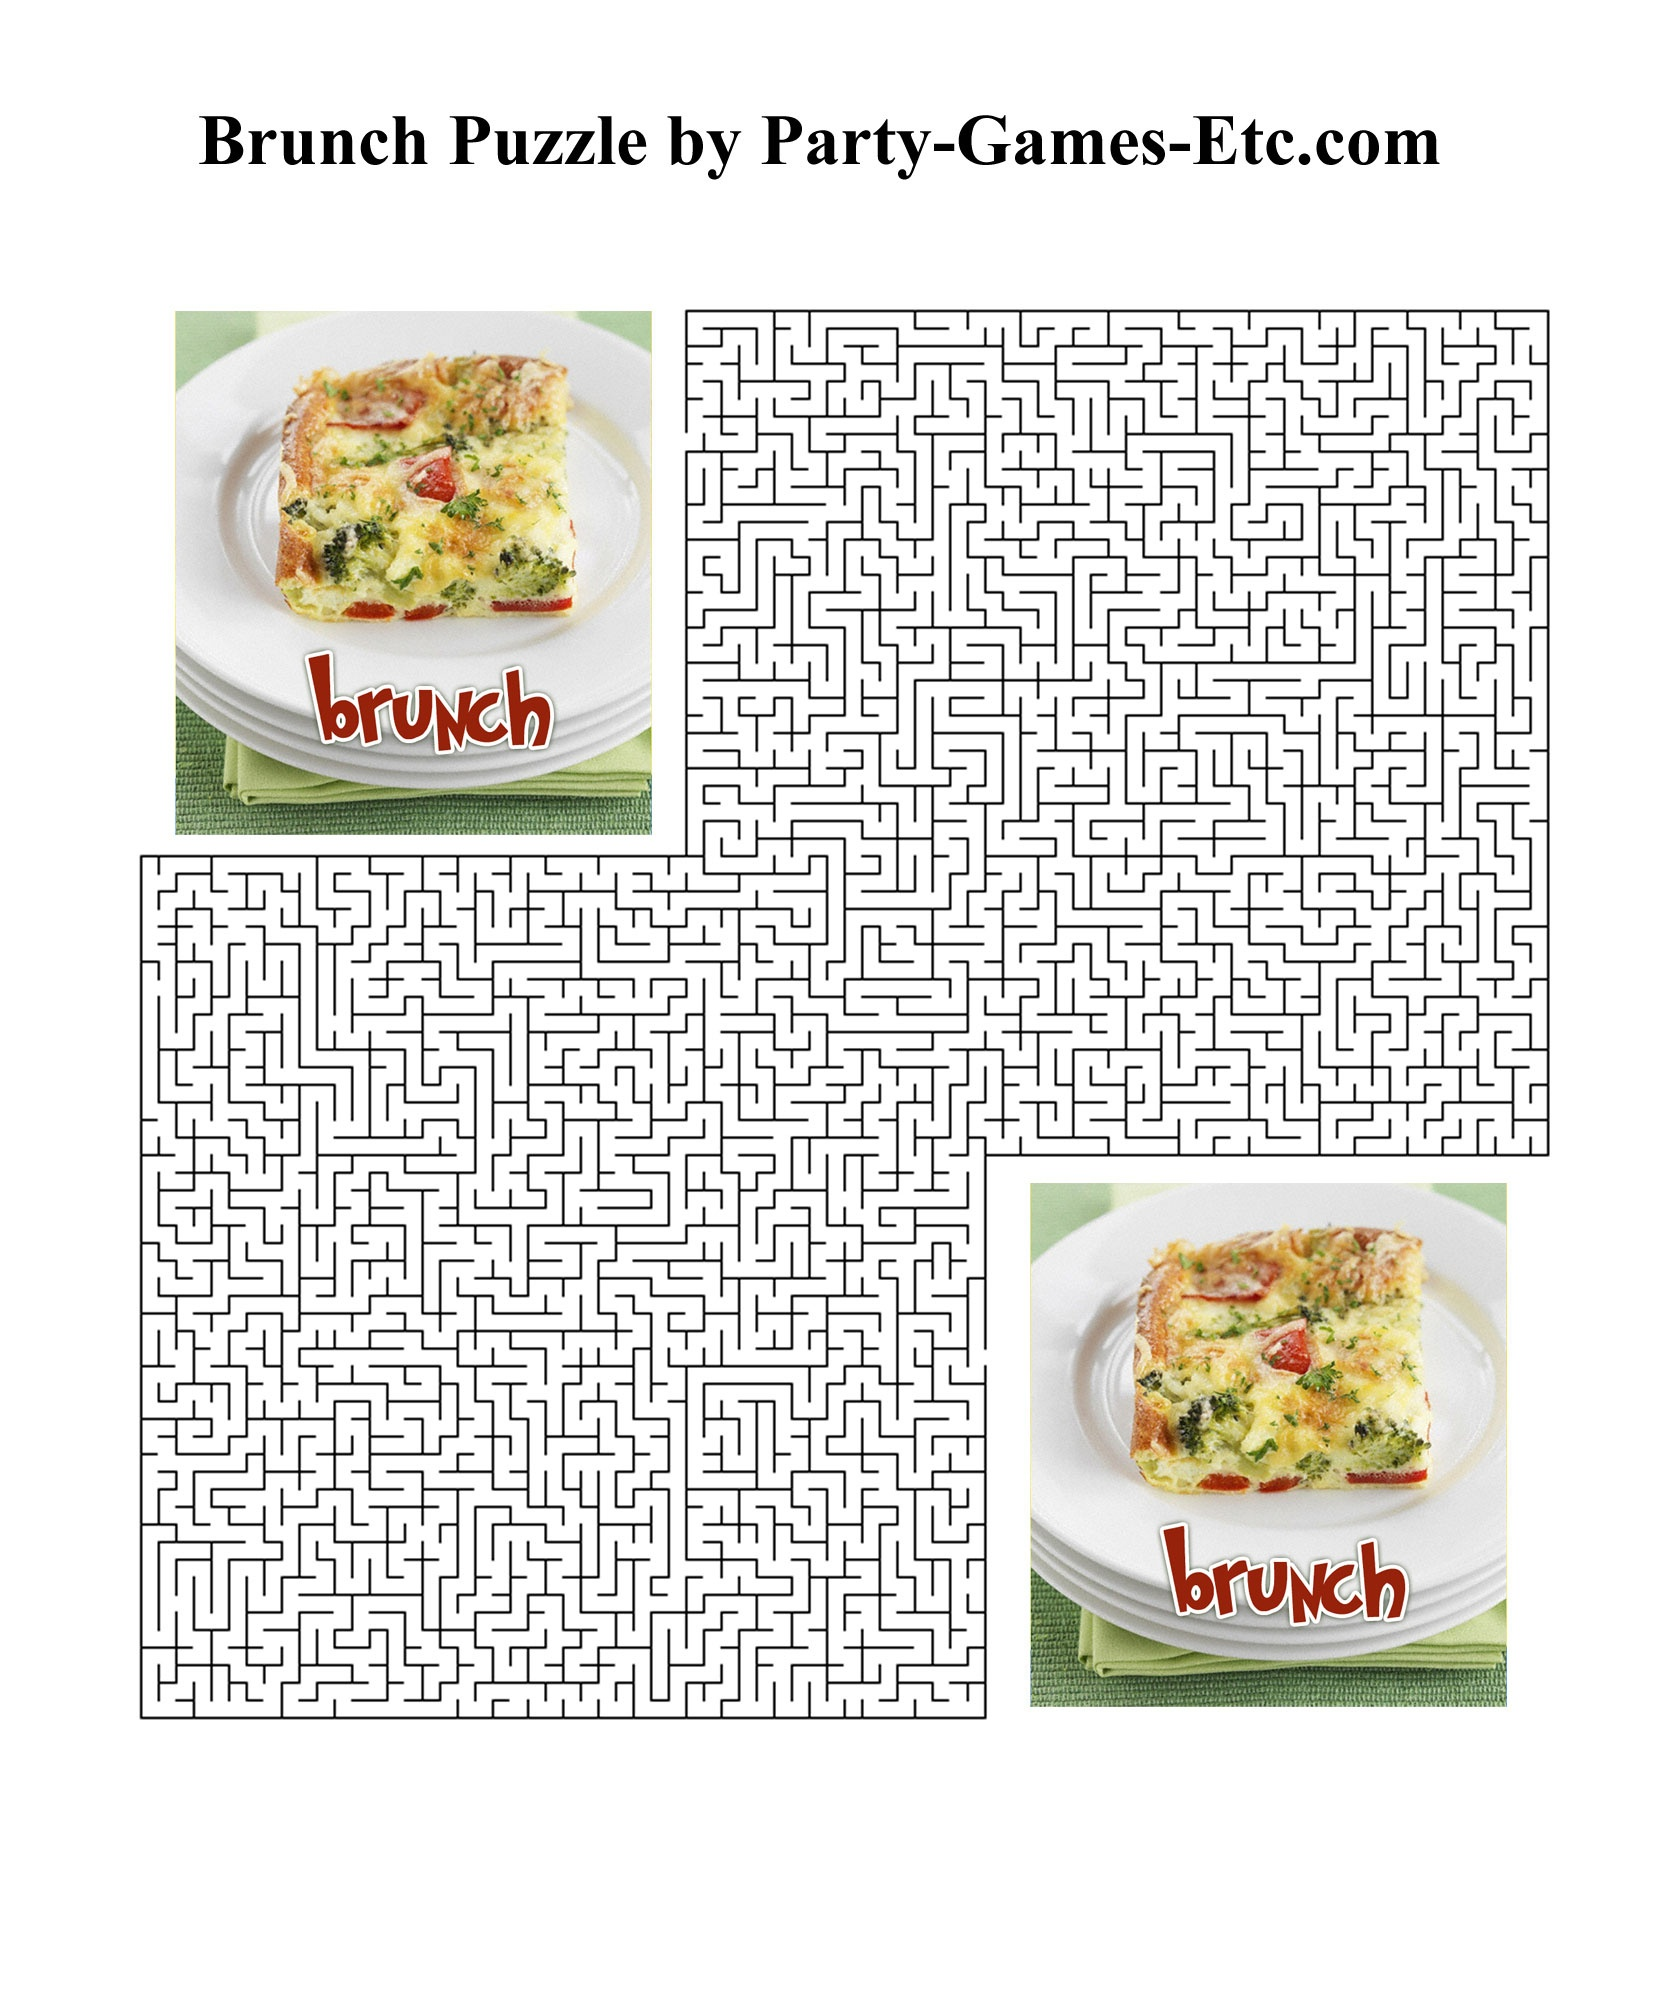 Brunch Party Games, Free Printable Games And Activities For A Theme - Over The Hill Games Free Printable